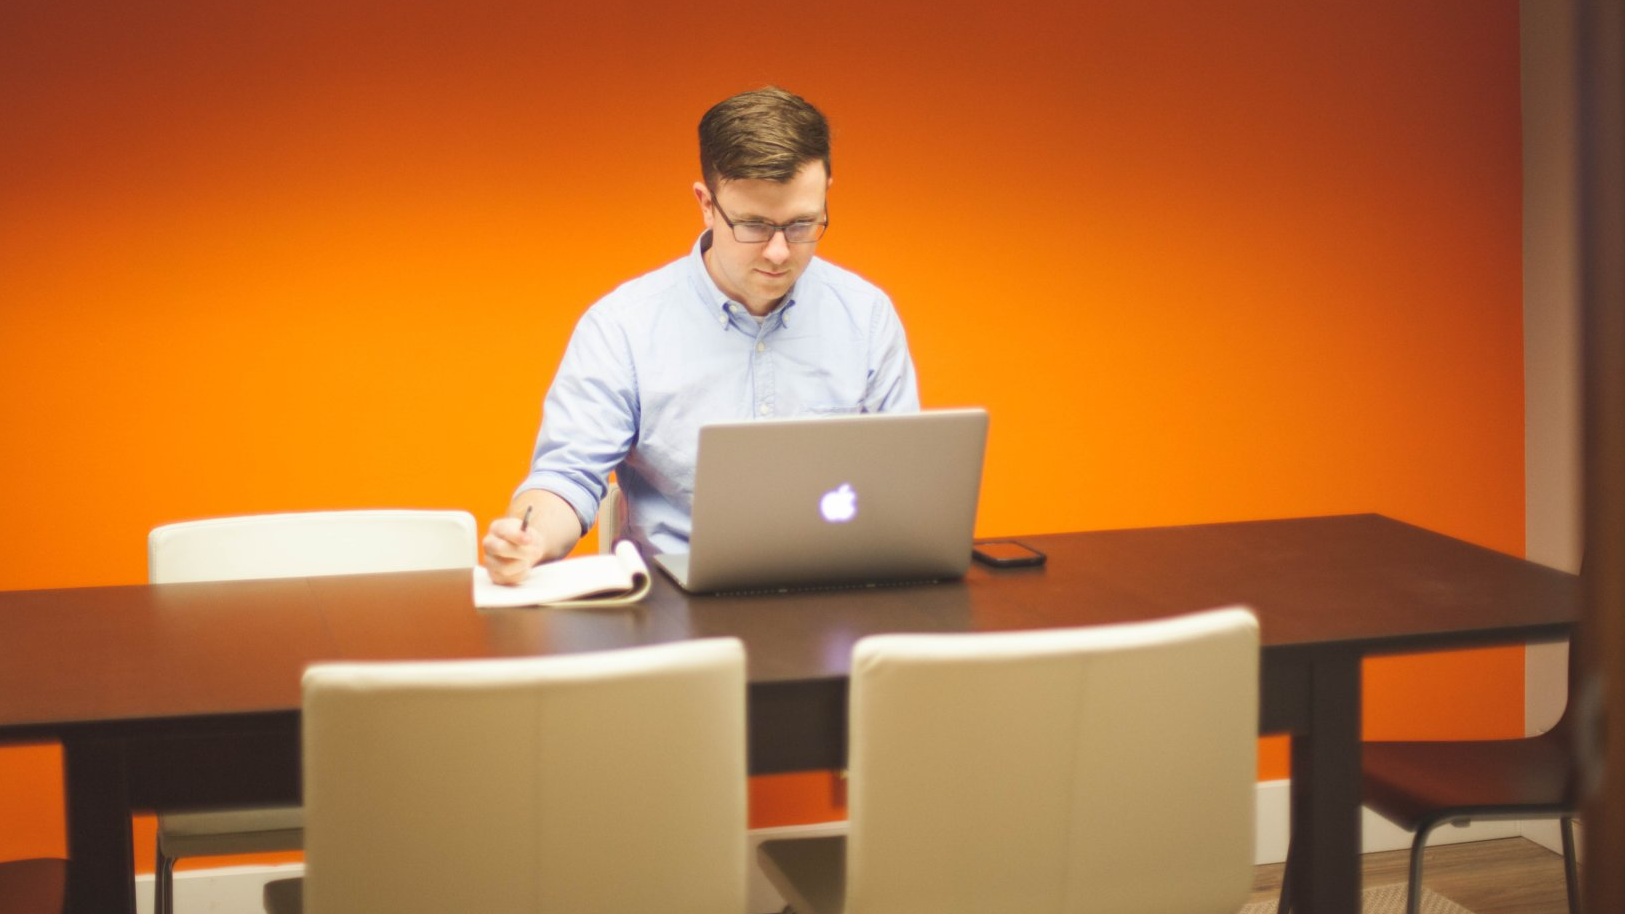 Man working in empty conference room